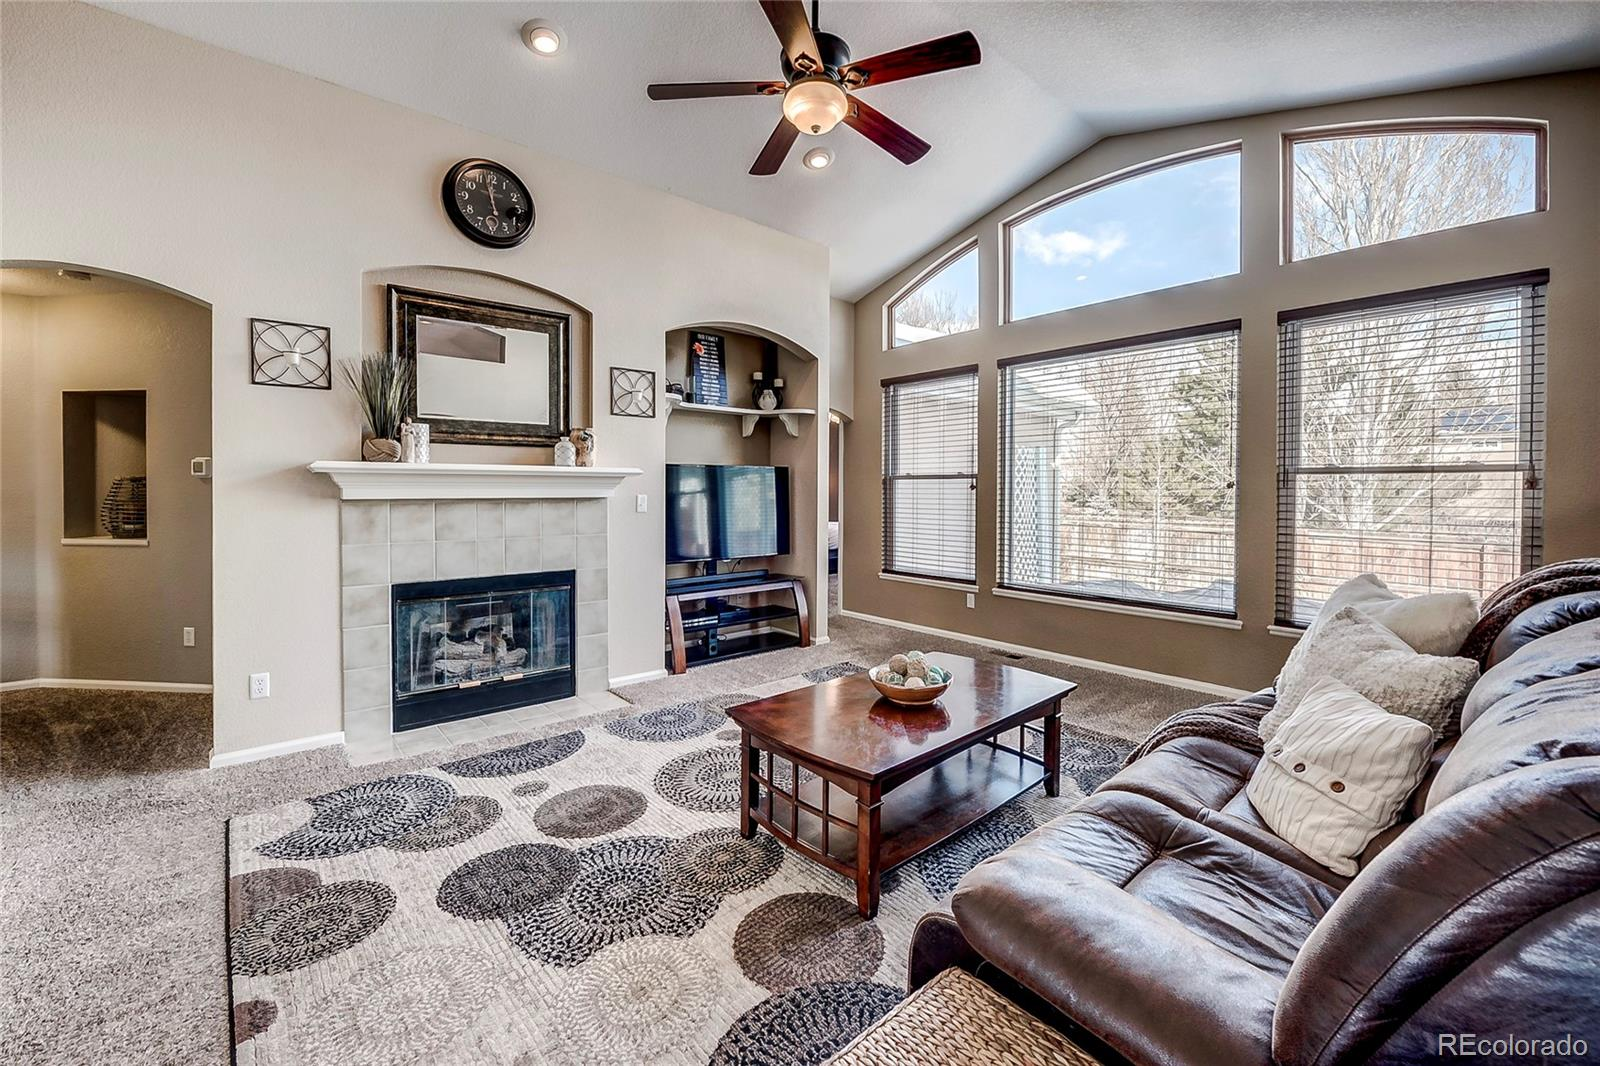 MLS# 4951528 - 2 - 15781 W 66th Place, Arvada, CO 80007